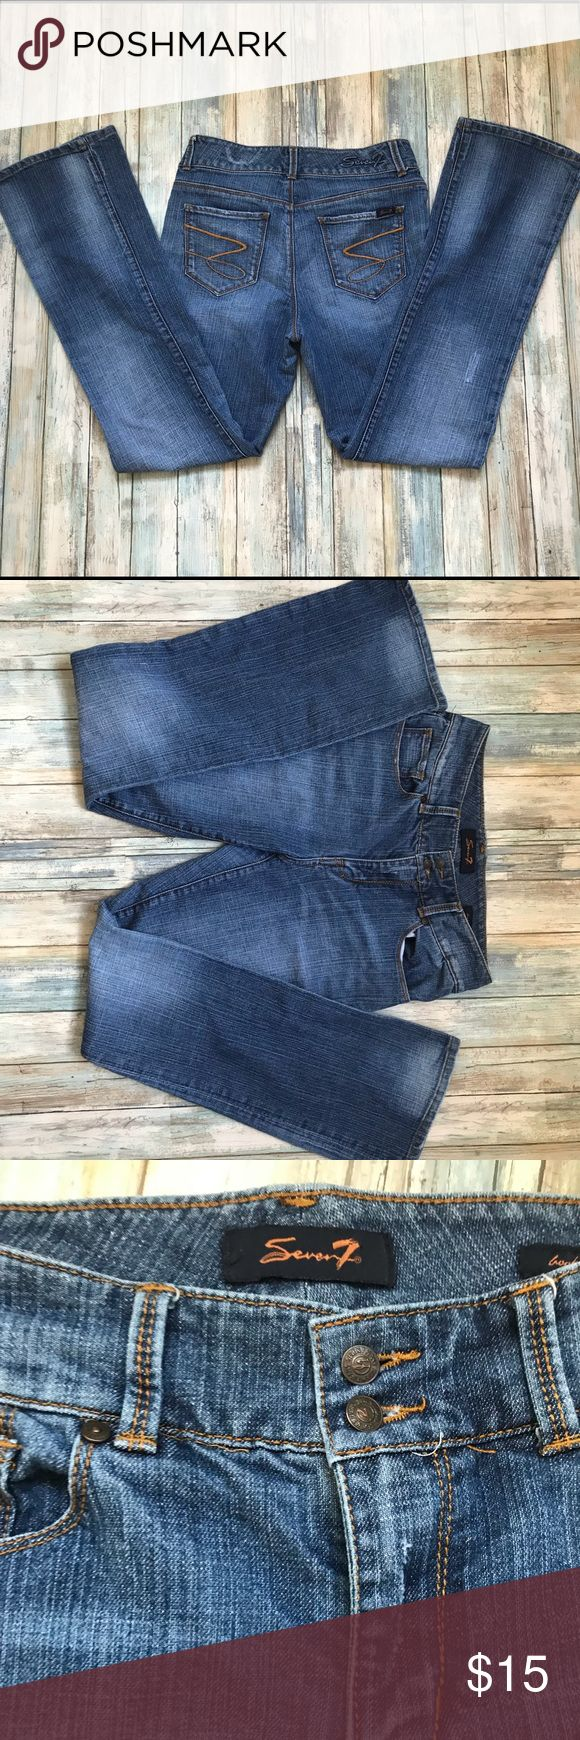 "Seven7 Jeans Seven7 Jeans in excellent used condition minus some wear in the belt area (a belt would hide it) the jeans have a naturally trendy worn look and no signs of wear in the thigh area. Inseam: 31"" Seven7 Jeans"